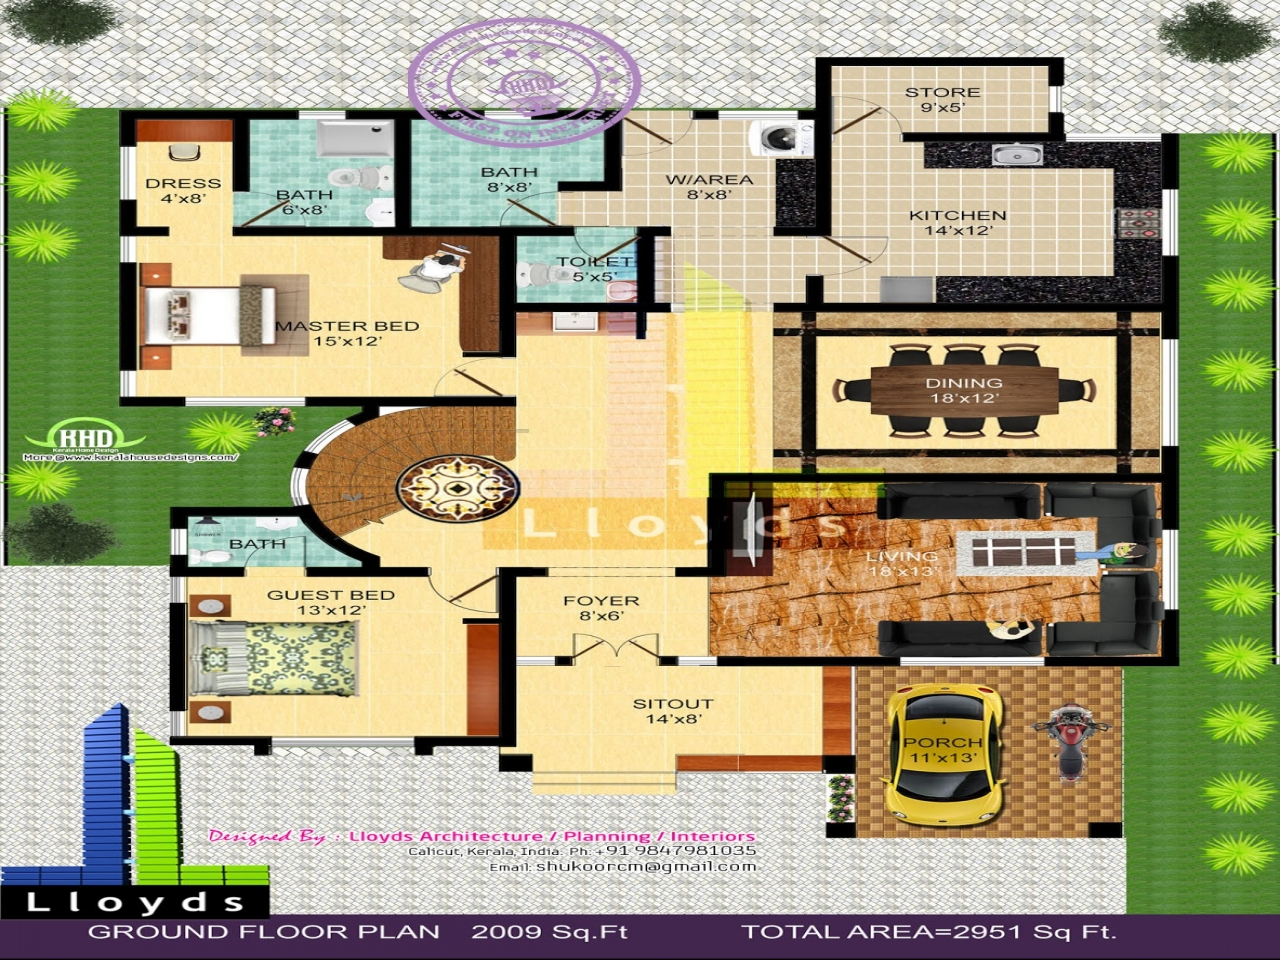 2 bedroom house plans 2 bedroom bungalow floor plan 1500 for 1500 sq ft bungalow house plans